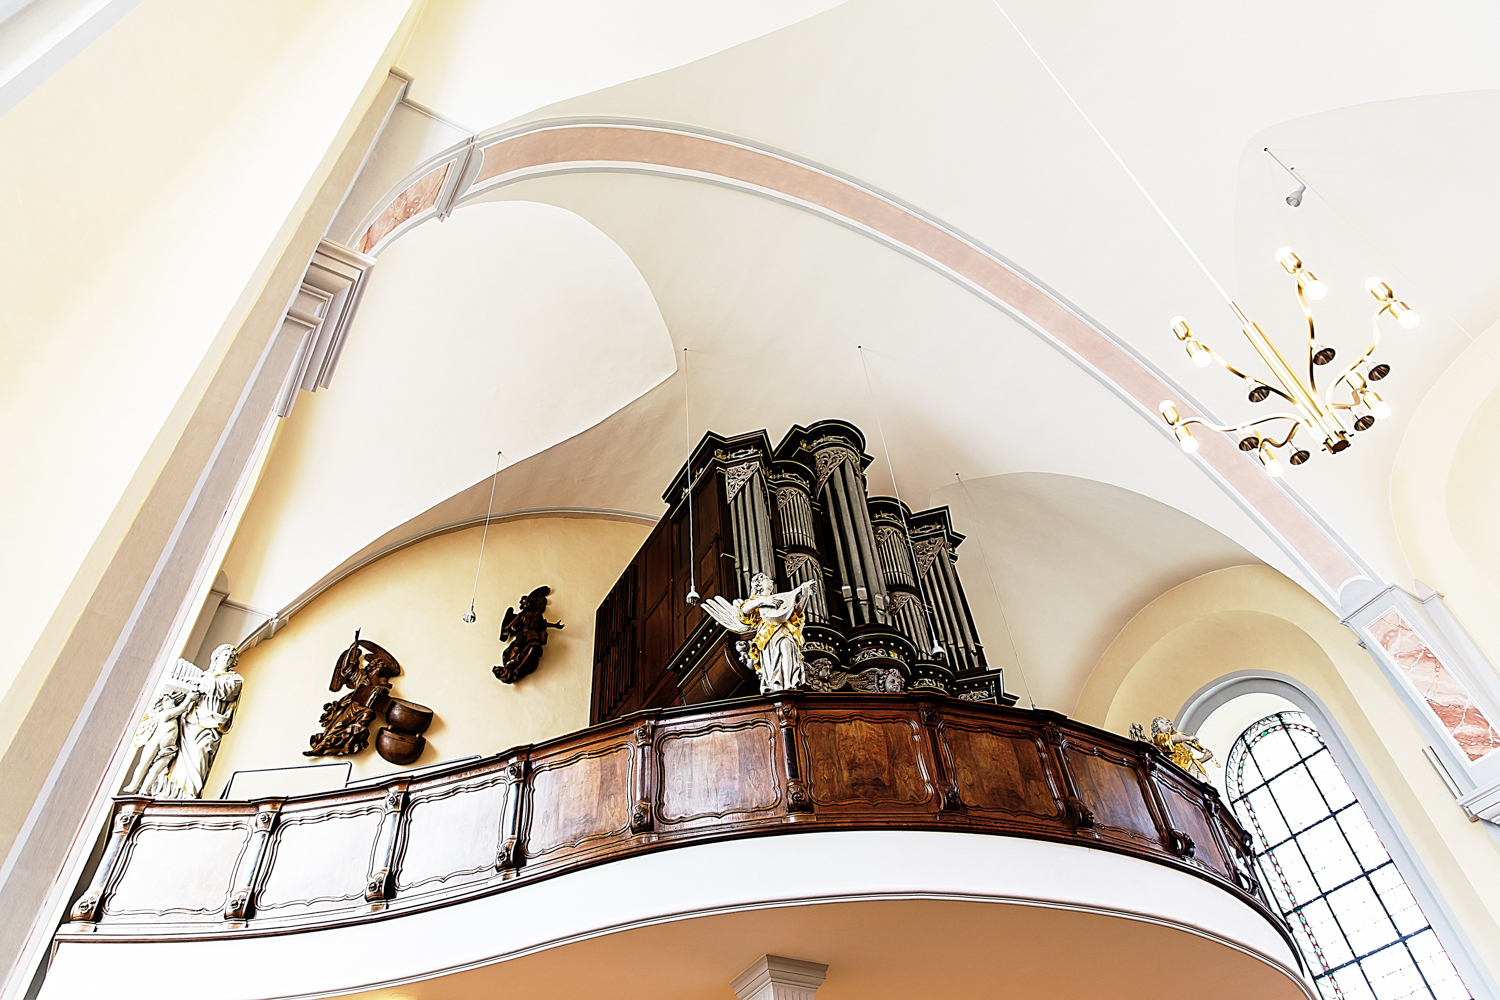 20130713 Junglinster Church - 1324-Edit.jpg